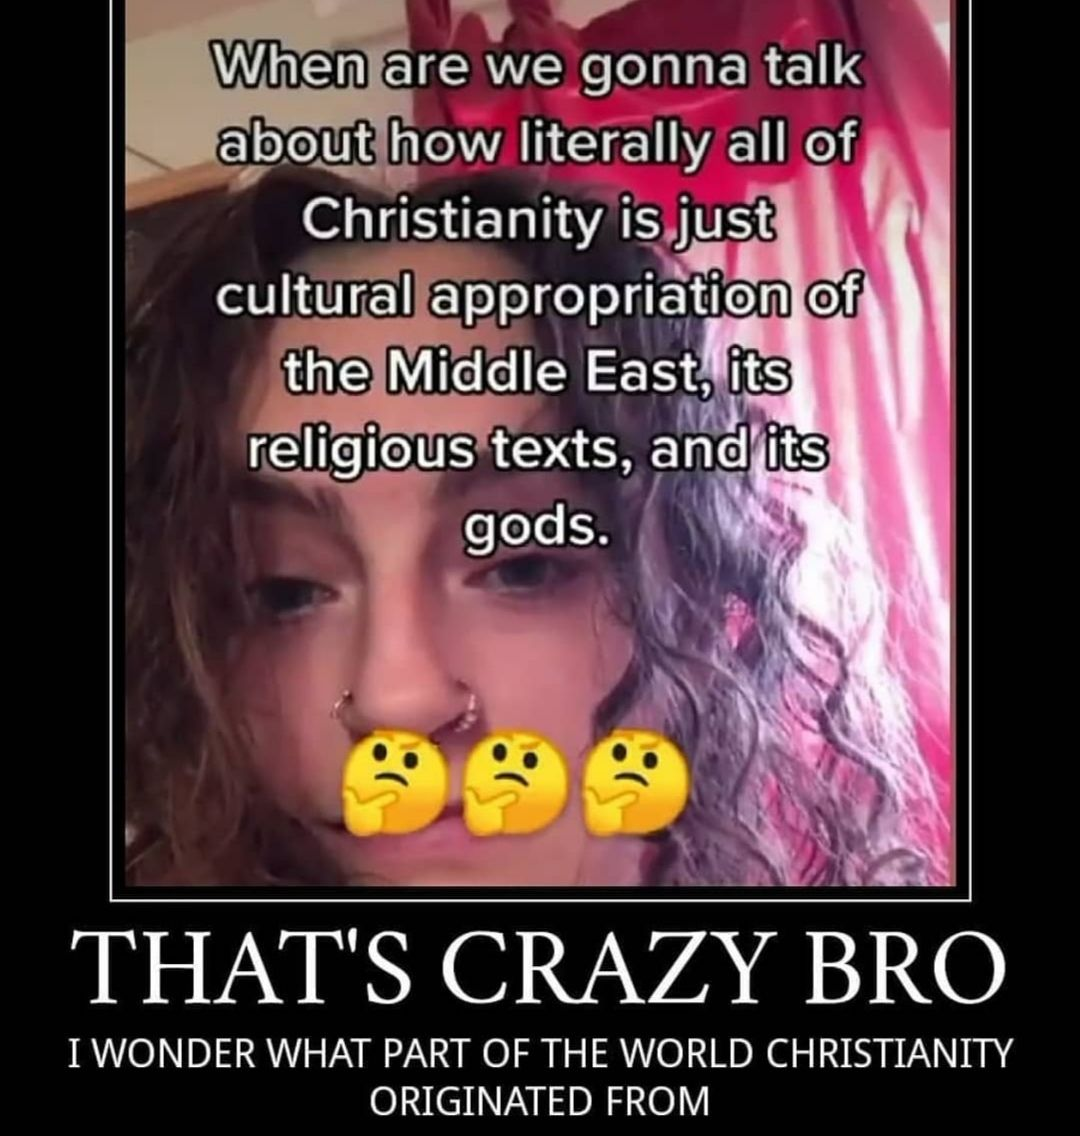 b-but christianity is WHITE JESUS WAS WHITE HE WAS I SWEAR HE WAS WHITE I DON'T CARE